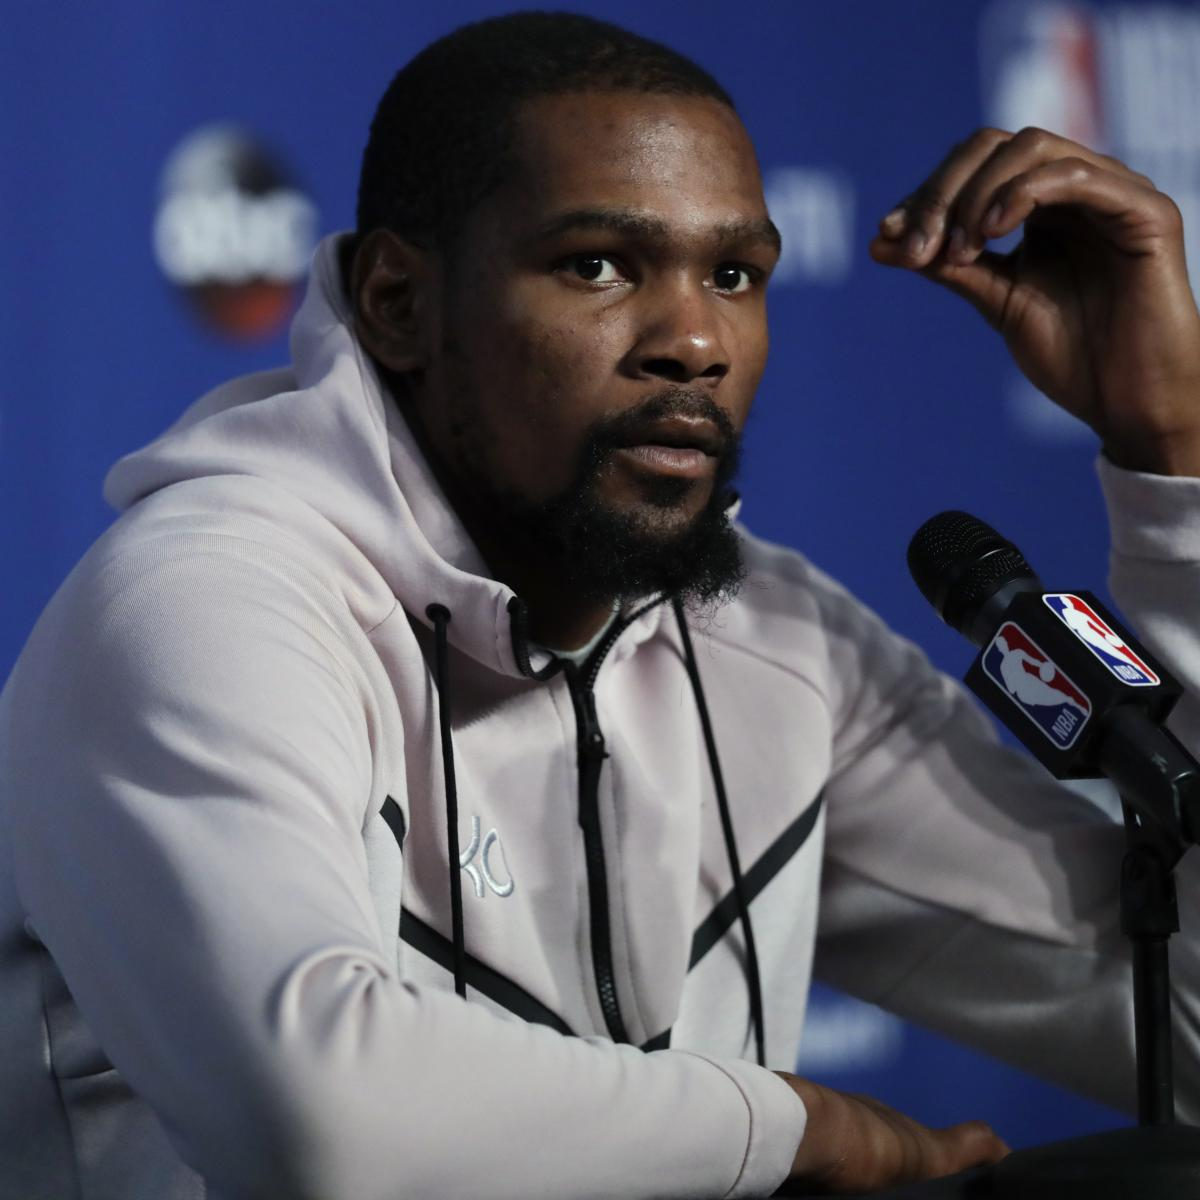 Kevin Durant Argues with Teenager on Instagram After Critical Post